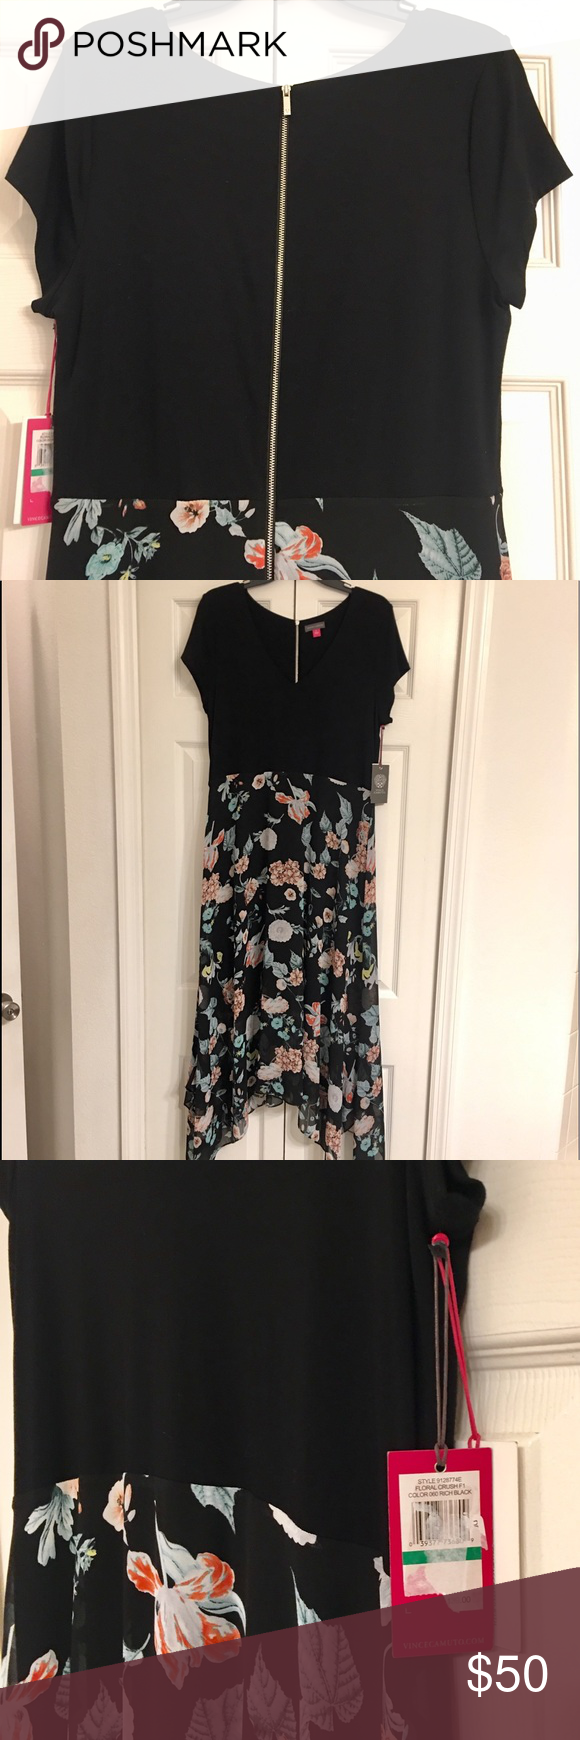 Vince Camuto Maxi Dress Size Large Nwt Beautiful Maxi Dresses Large Size Dresses Sheer Dress [ 1740 x 580 Pixel ]